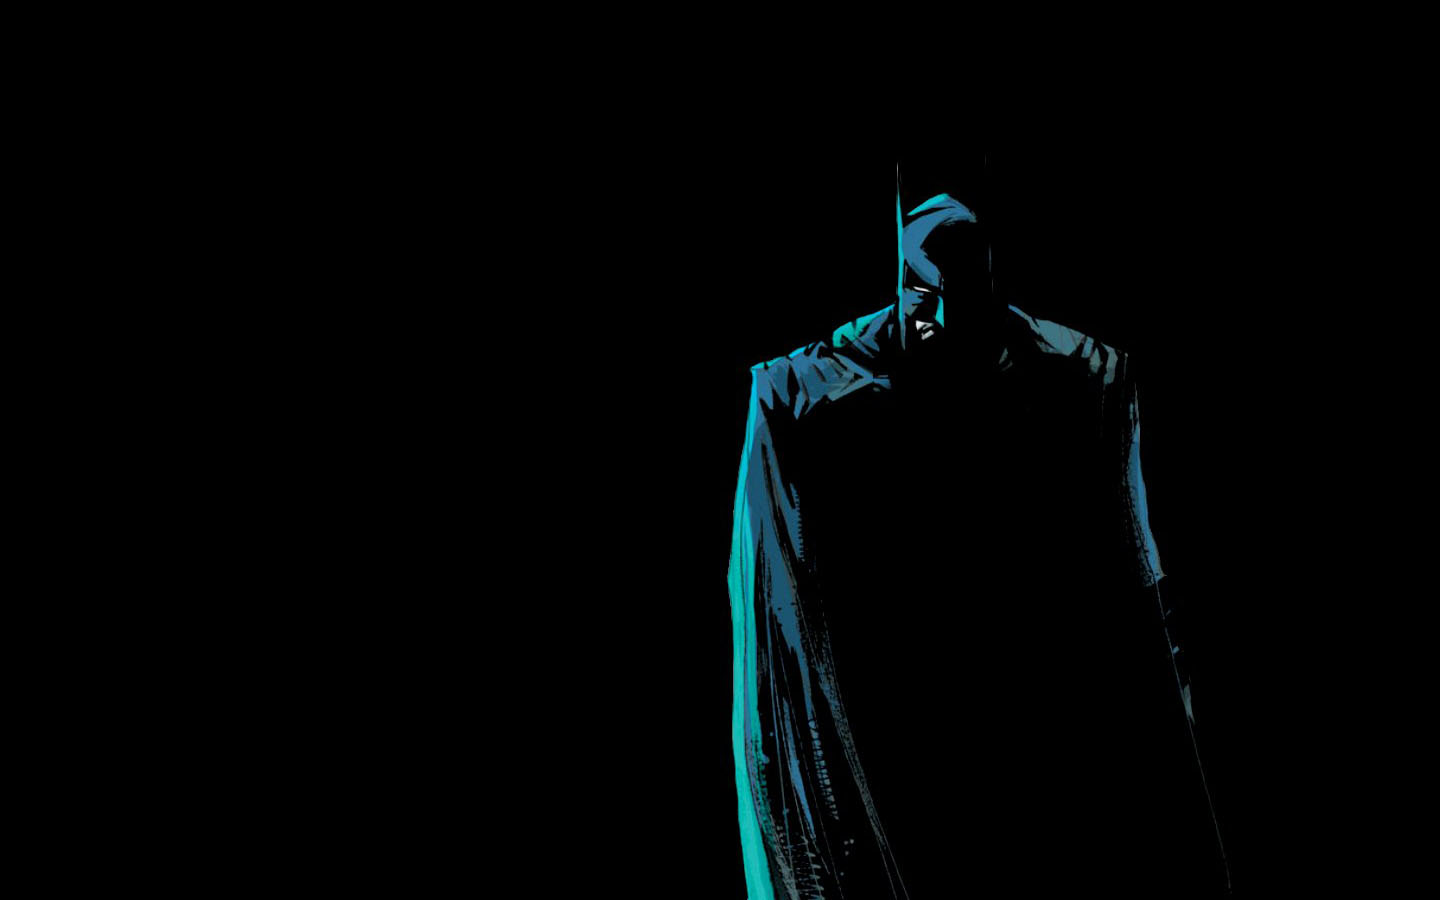 3 batman the animated series hd wallpapers background